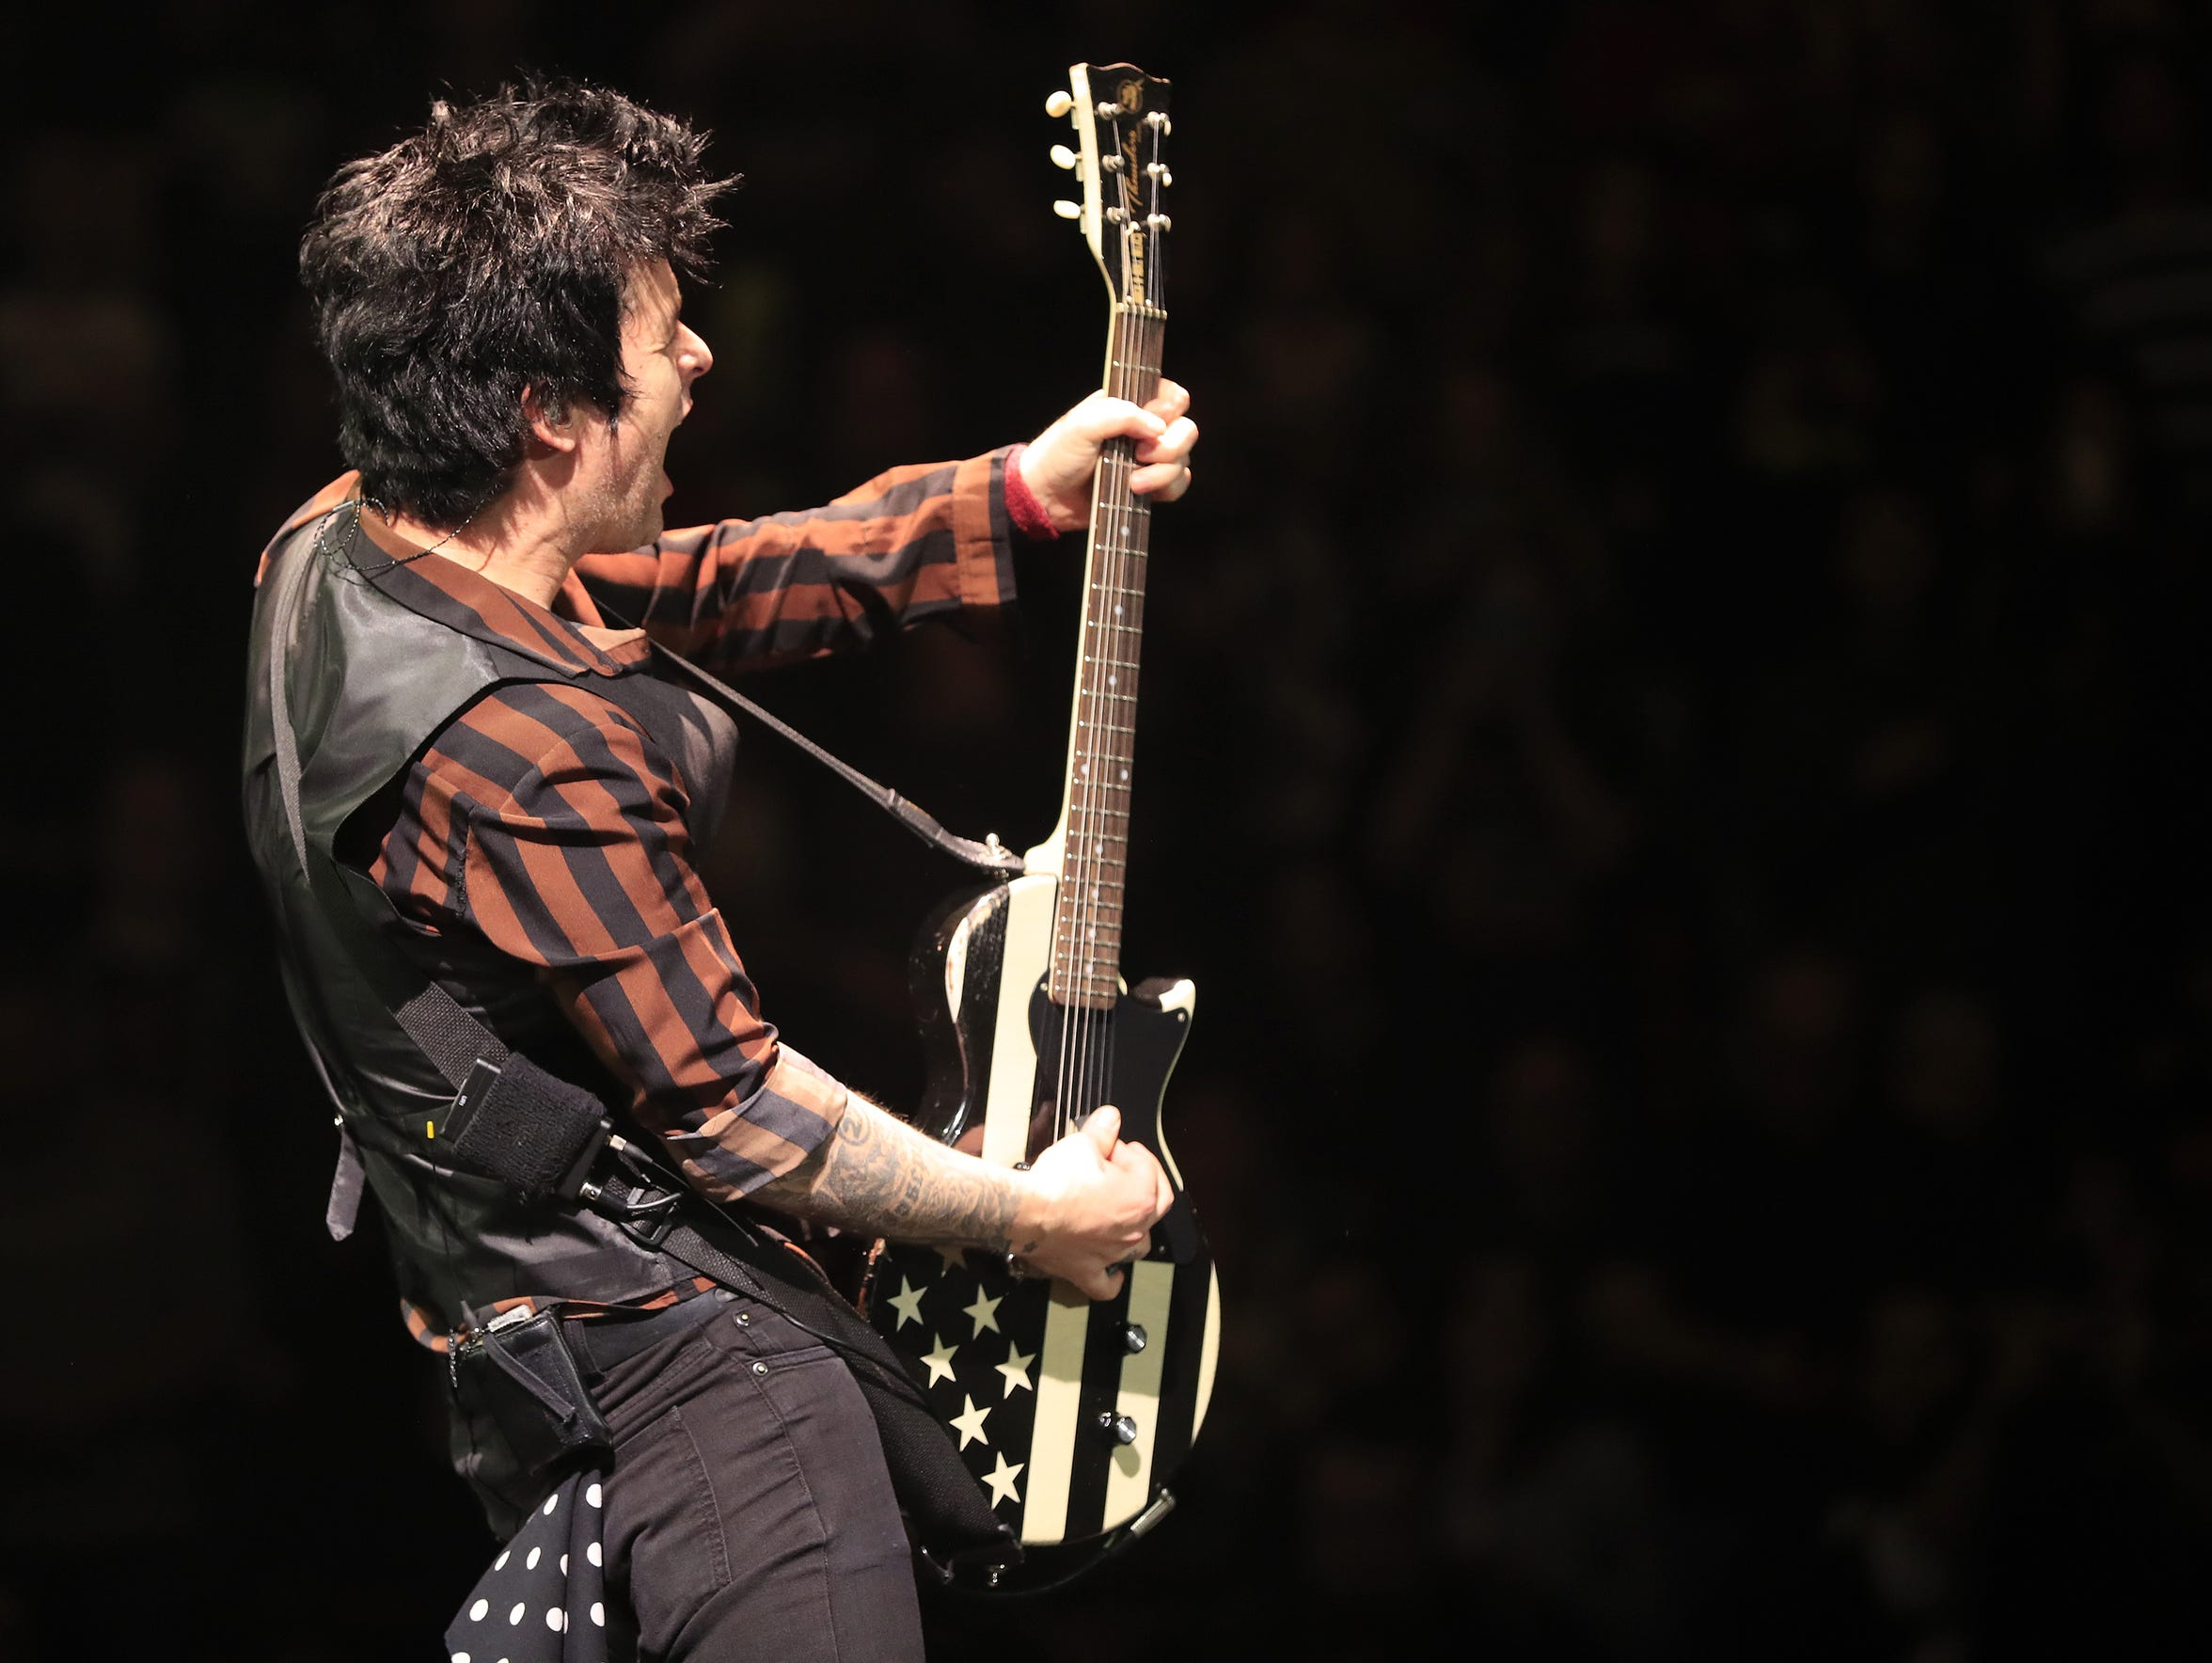 Billie Joe Armstrong performs to a sold-out crowd in